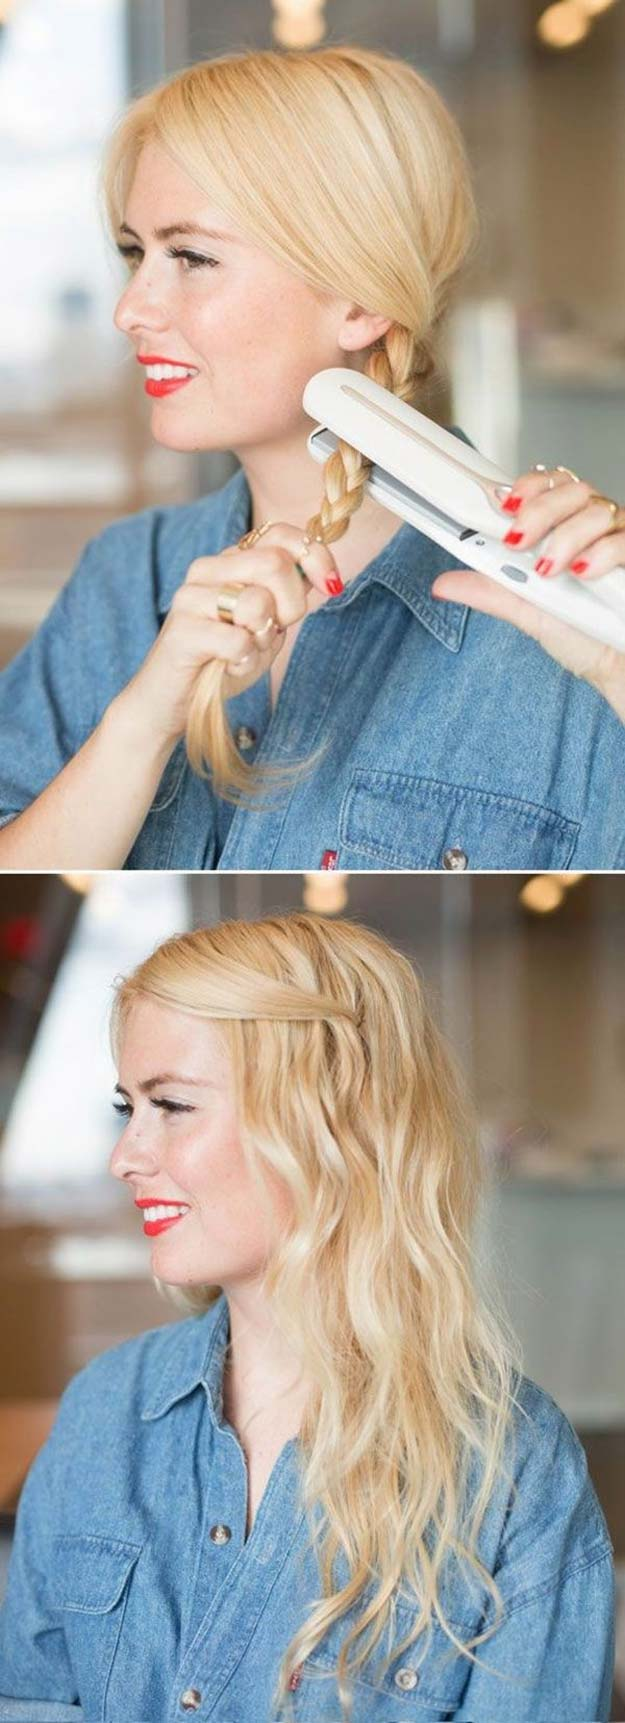 Cool and Easy DIY Hairstyles - 5 Minute Office Friendly Hairstyle - Quick and Easy Ideas for Back to School Styles for Medium, Short and Long Hair - Fun Tips and Best Step by Step Tutorials for Teens, Prom, Weddings, Special Occasions and Work. Up dos, Braids, Top Knots and Buns, Super Summer Looks #hairstyles #hair #teens #easyhairstyles #diy #beauty